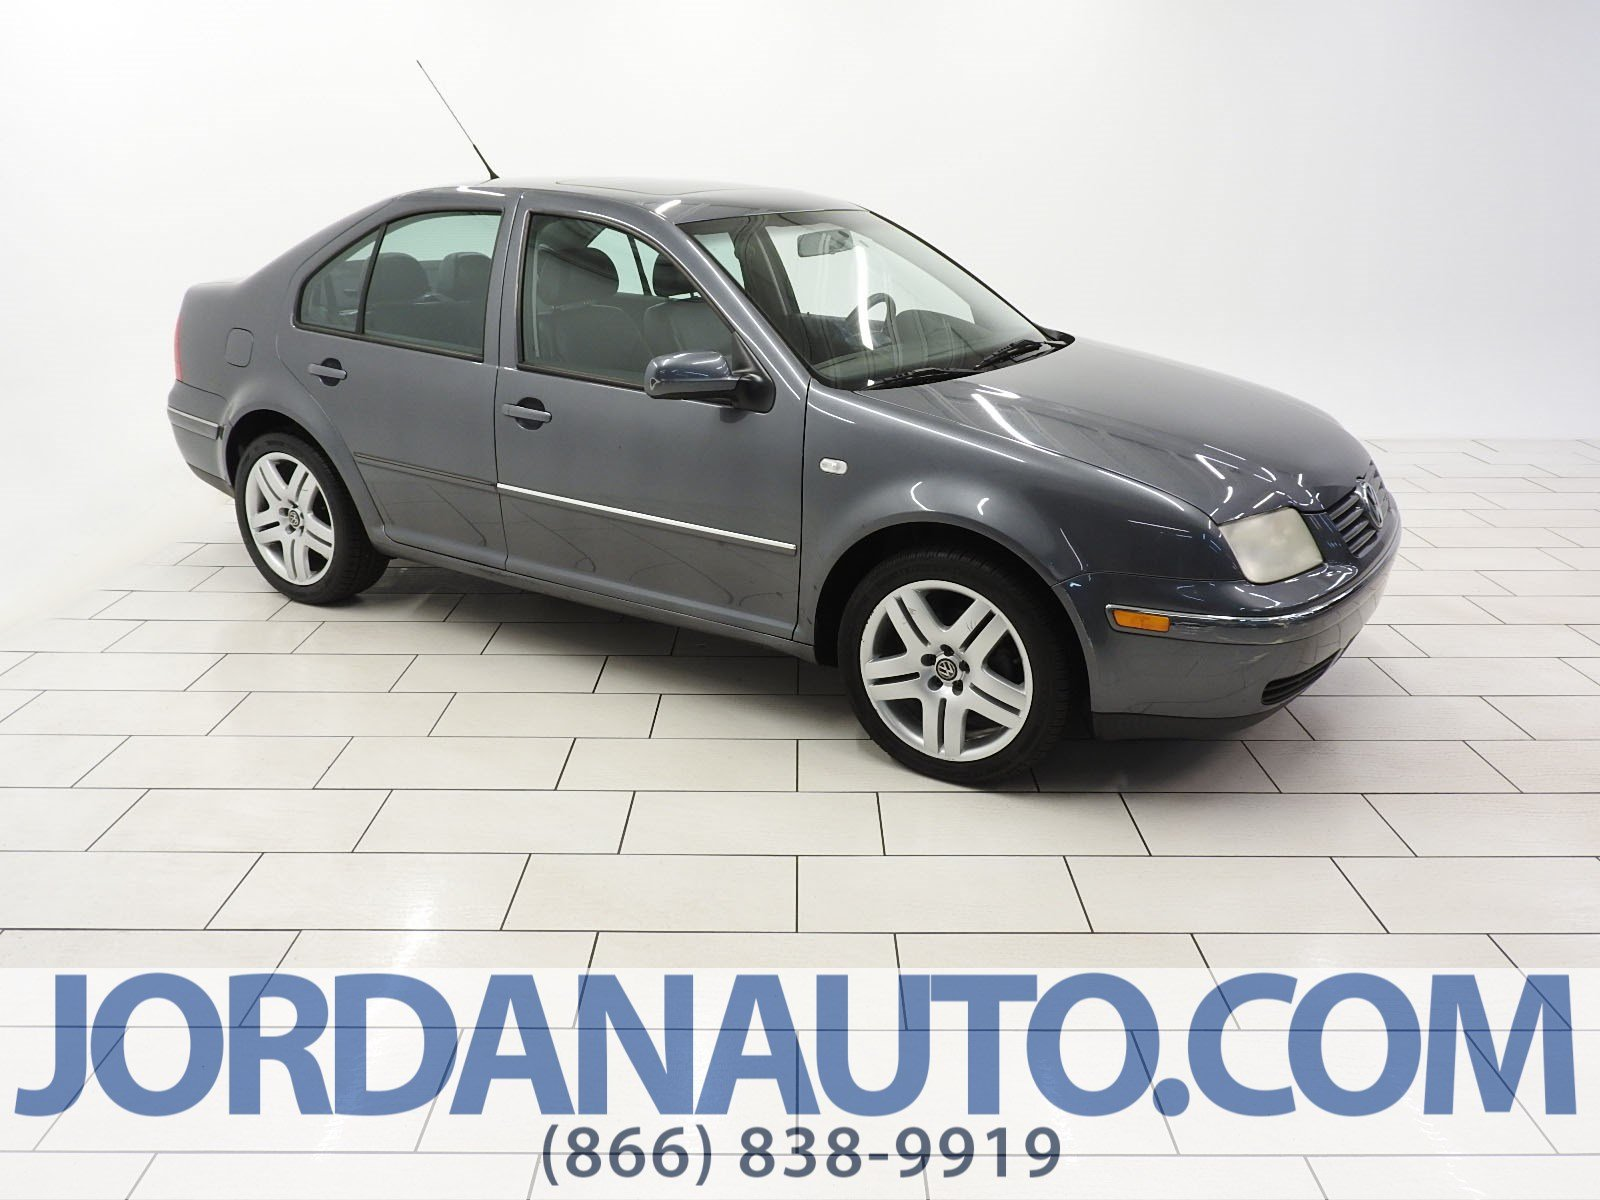 Pre-Owned 2004 Volkswagen Jetta Sedan GLI